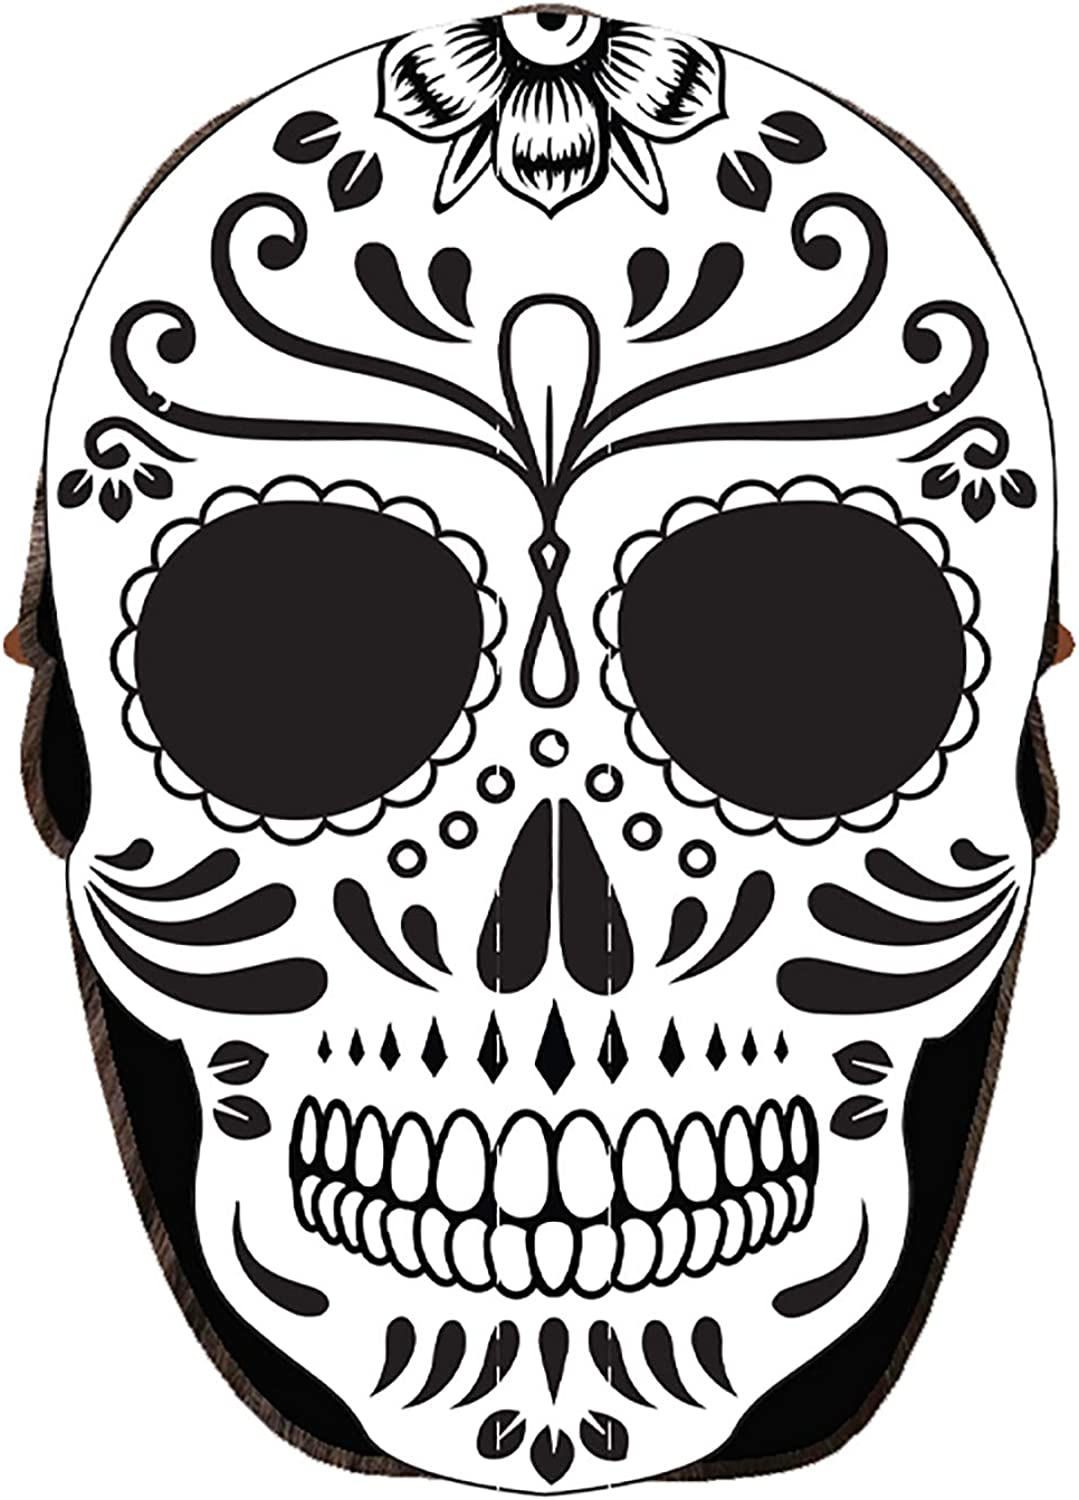 Black Hat and Mask in One White Day of The Dead Fan Mask Baseball Cap Accessory D/ía de Muertos